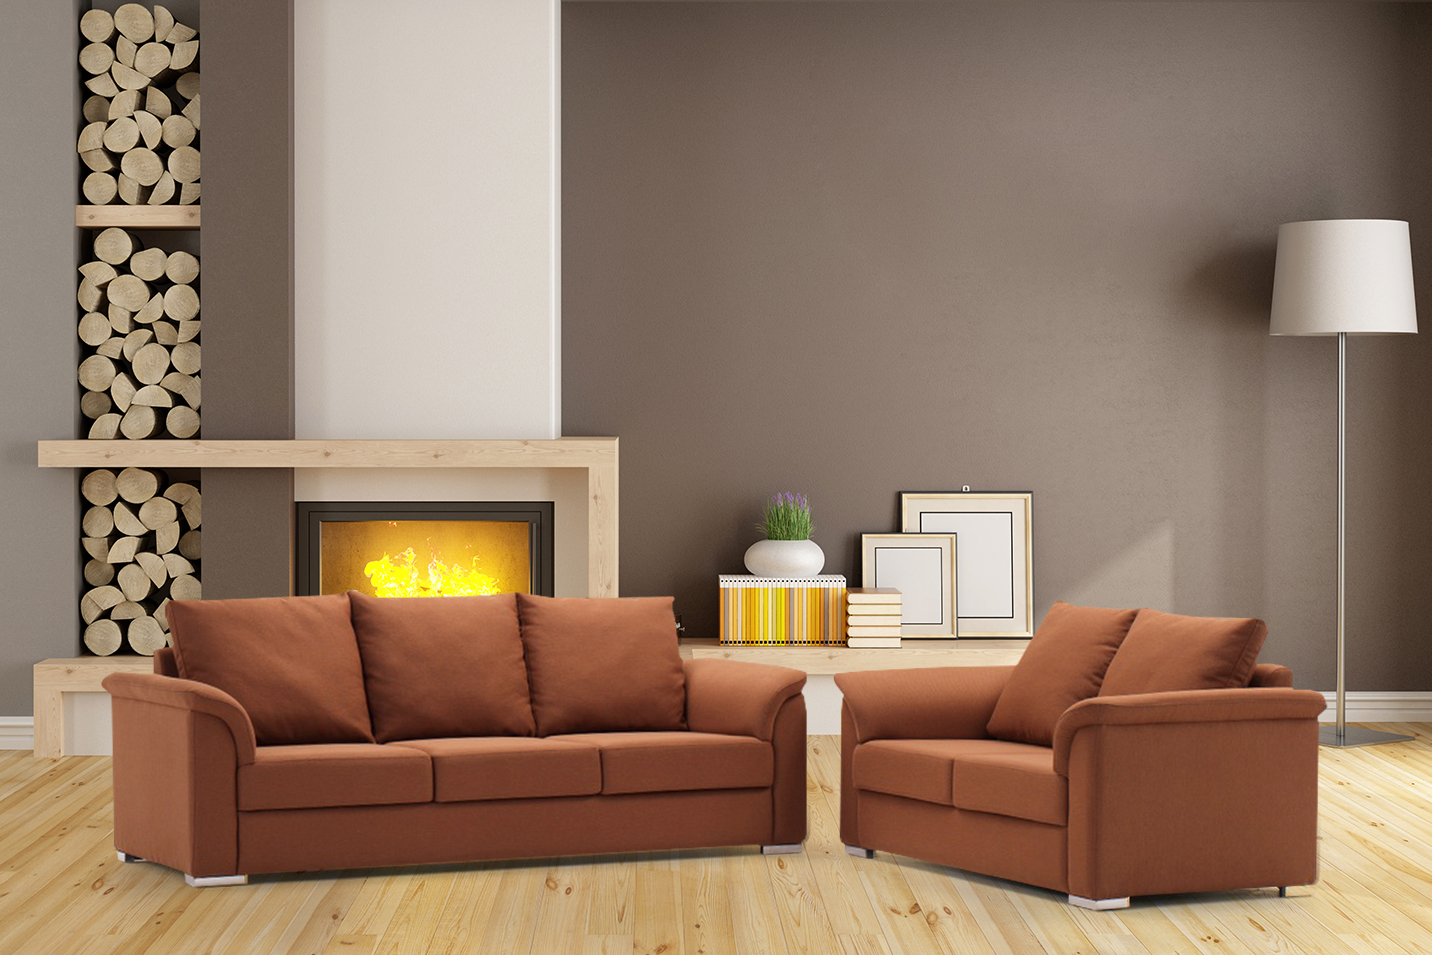 Buy Sofas for Living Room